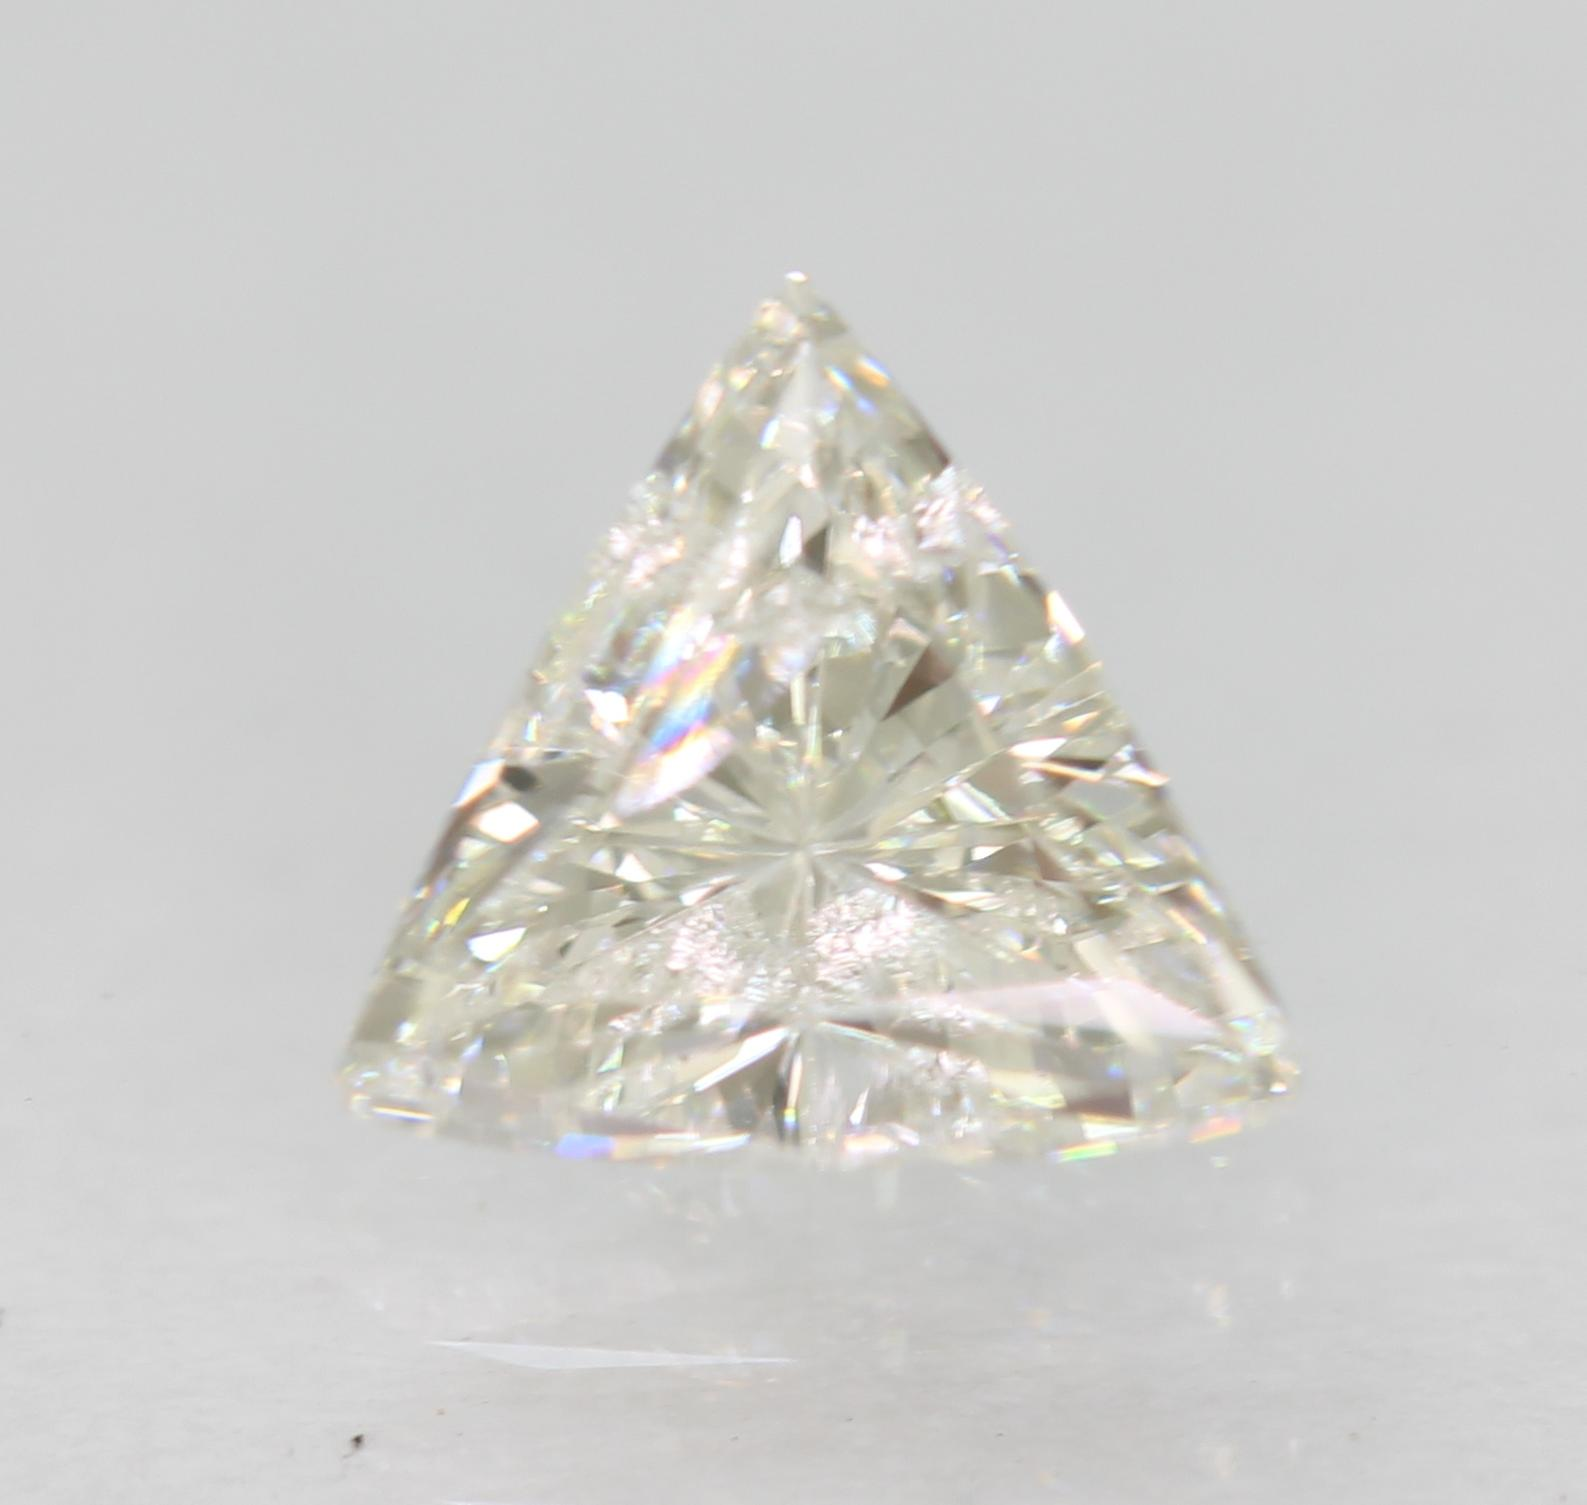 Certified 0.57 Carat F Color SI1 Triangle Natural Loose Diamond 6.12x5.64mm 2VG